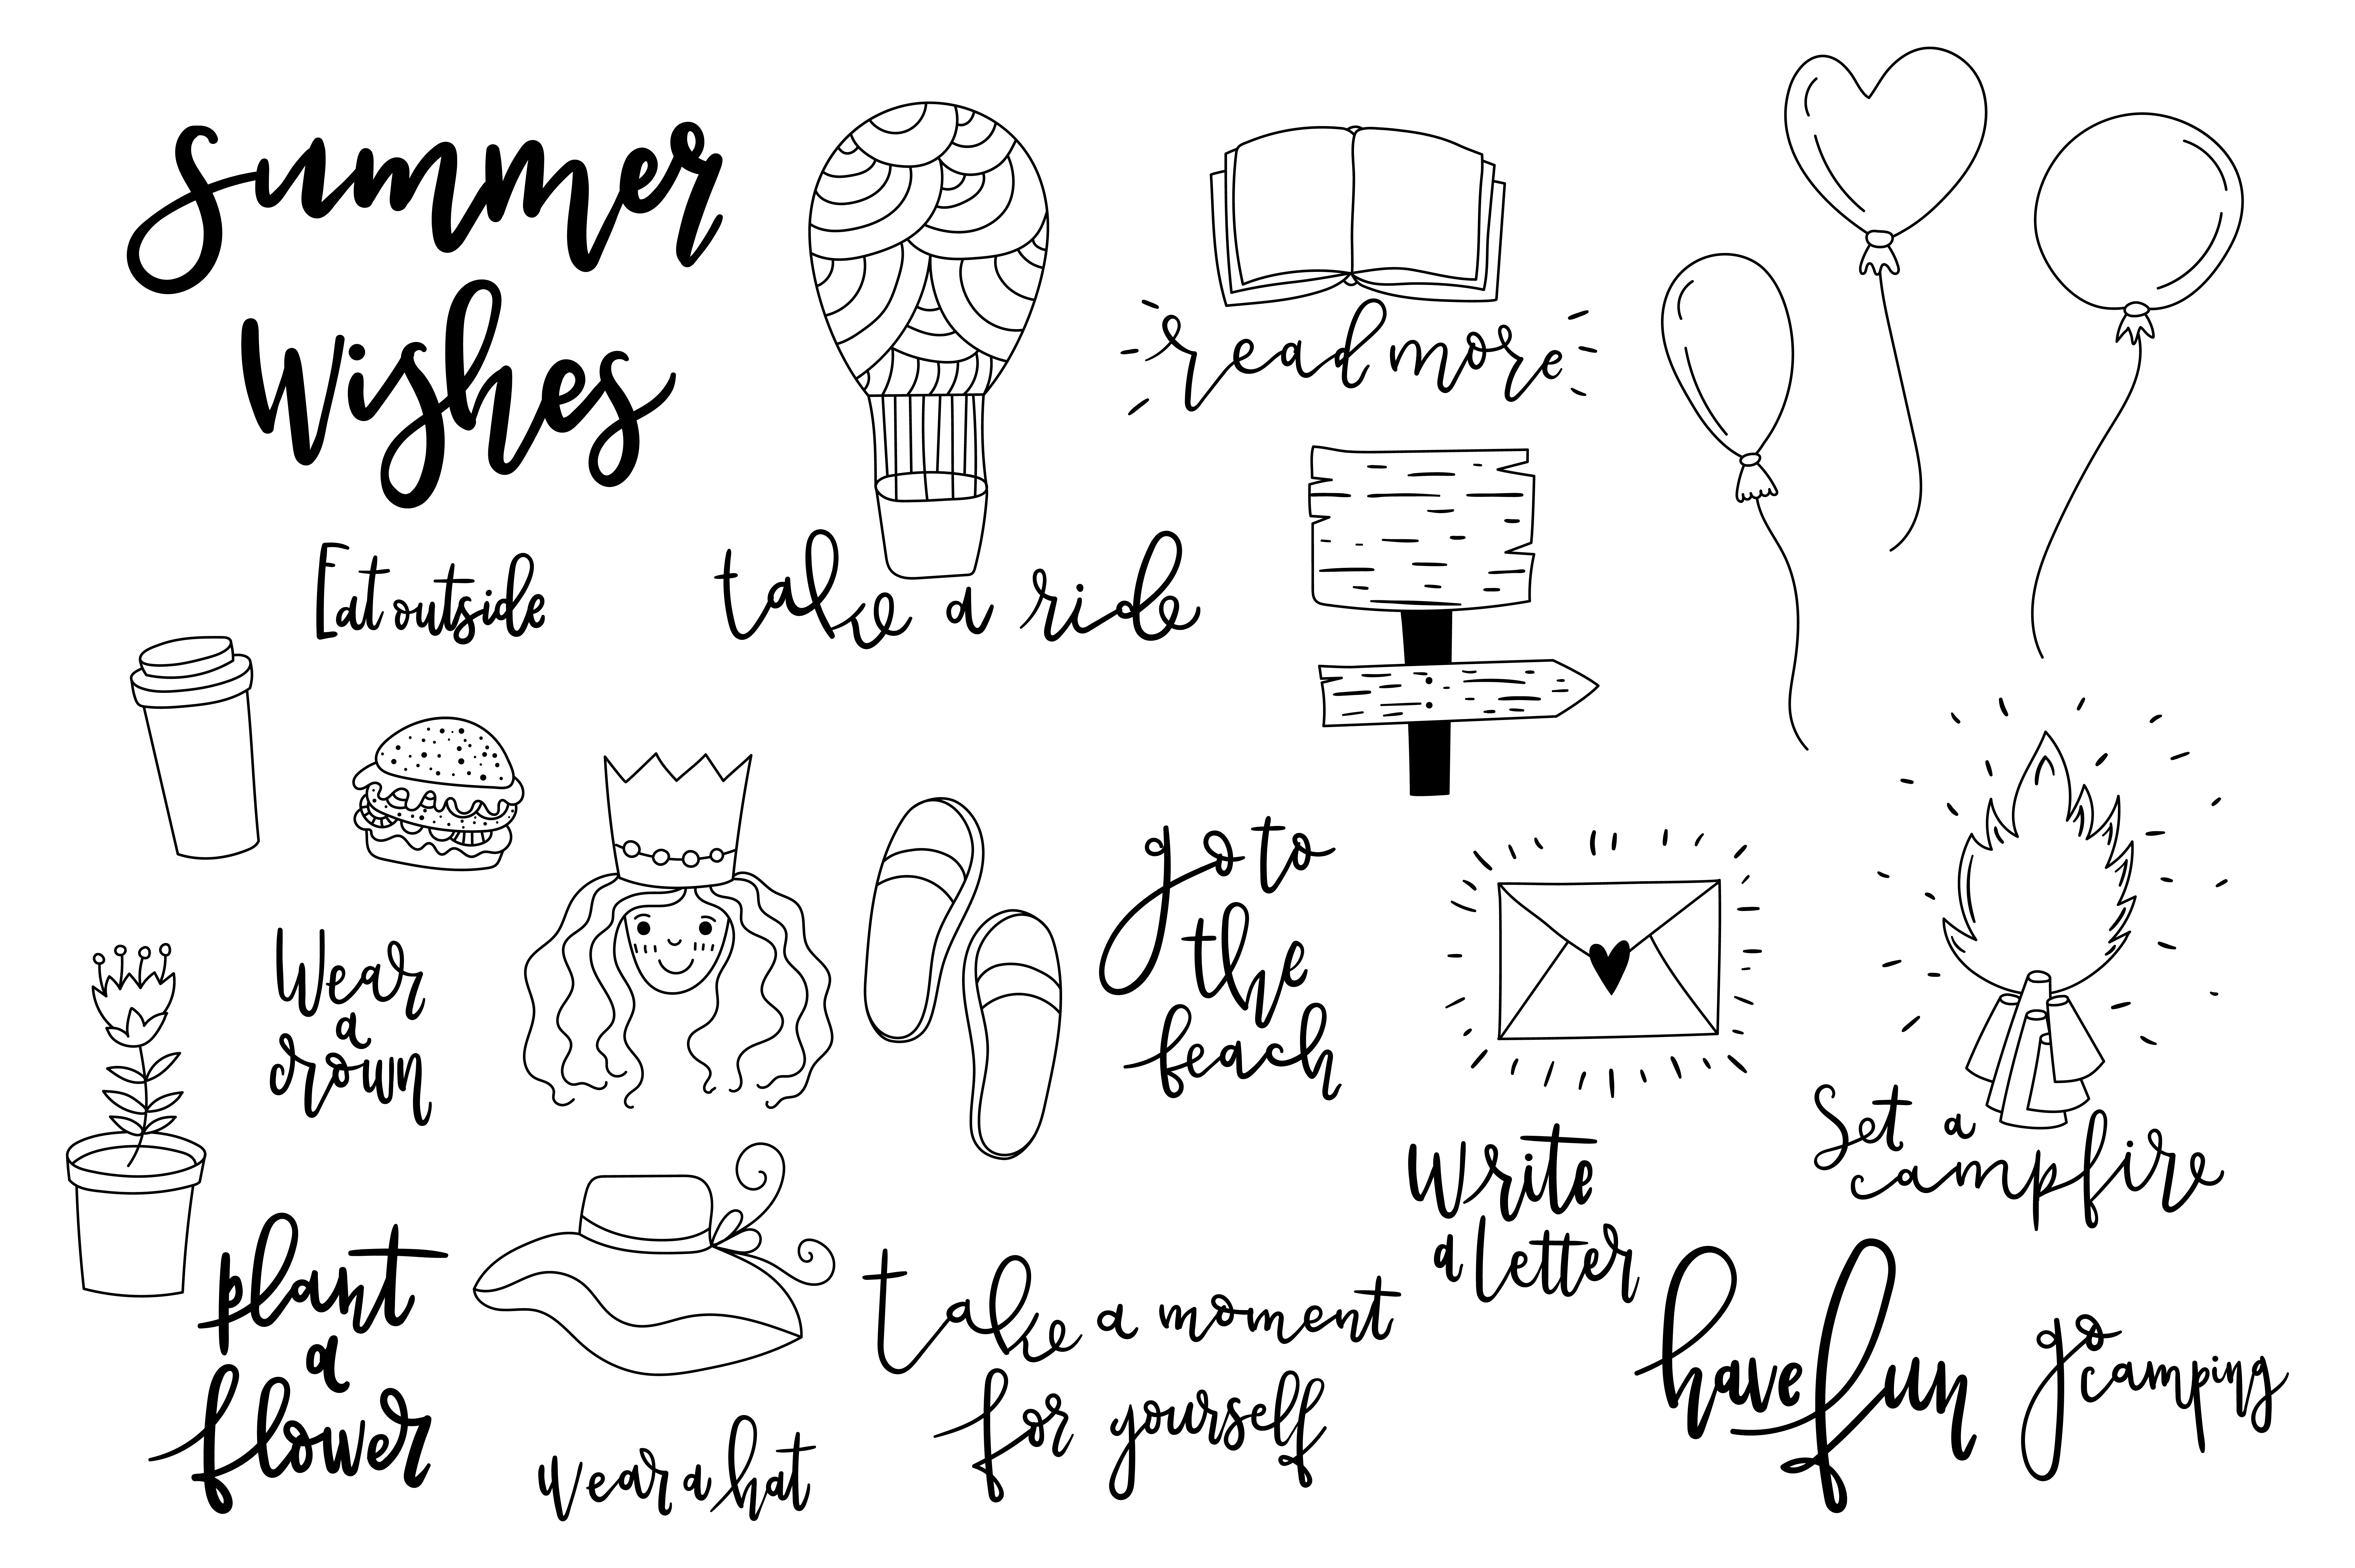 Download Free Summer Wishes Doodles Graphic By Sentimental Postman Creative for Cricut Explore, Silhouette and other cutting machines.